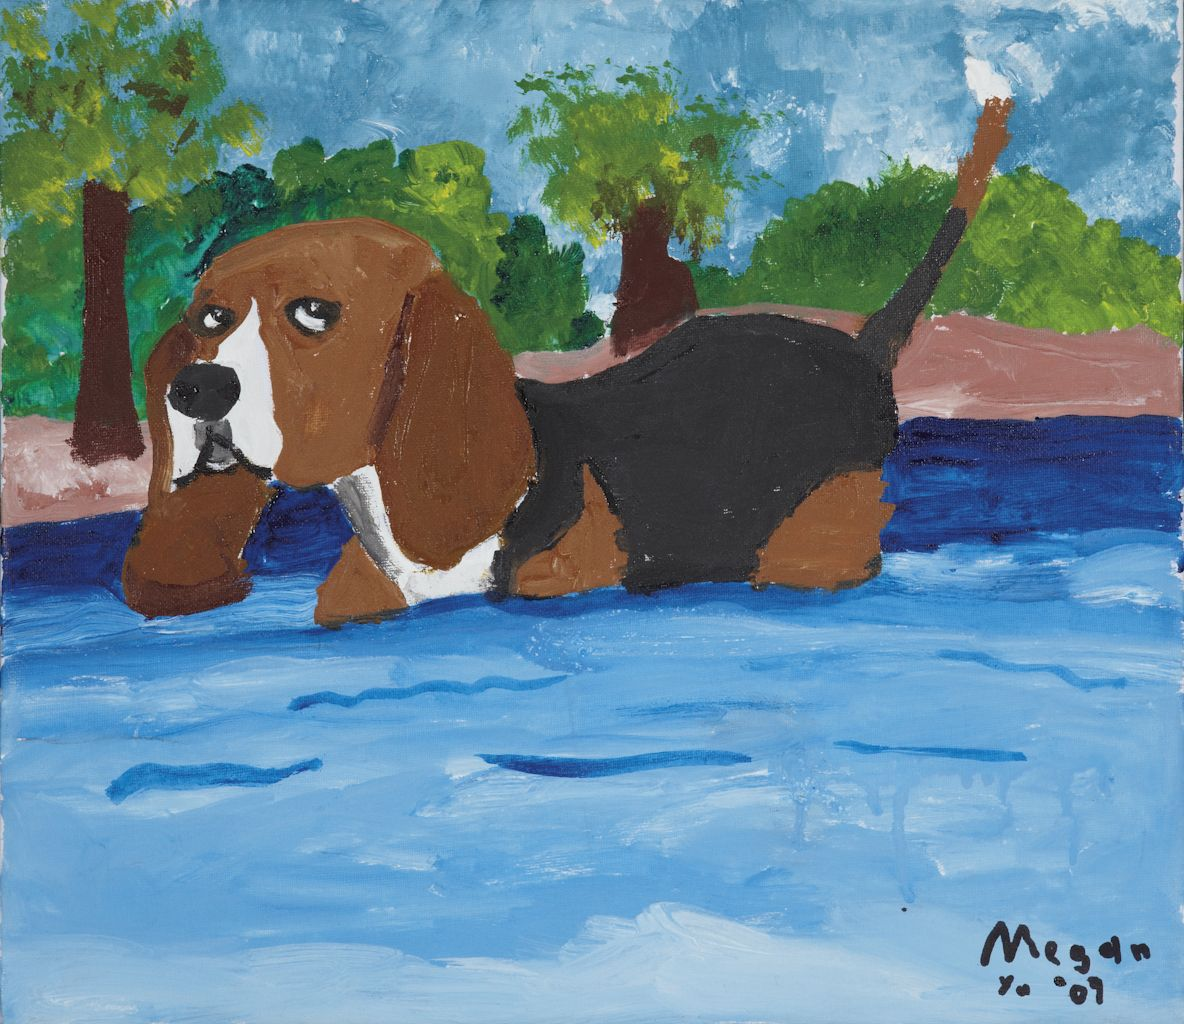 Puppy Swimming In The River By Megan Louise Yu San Juan Philippines Painting Dog Art Dog Show Different Dogs